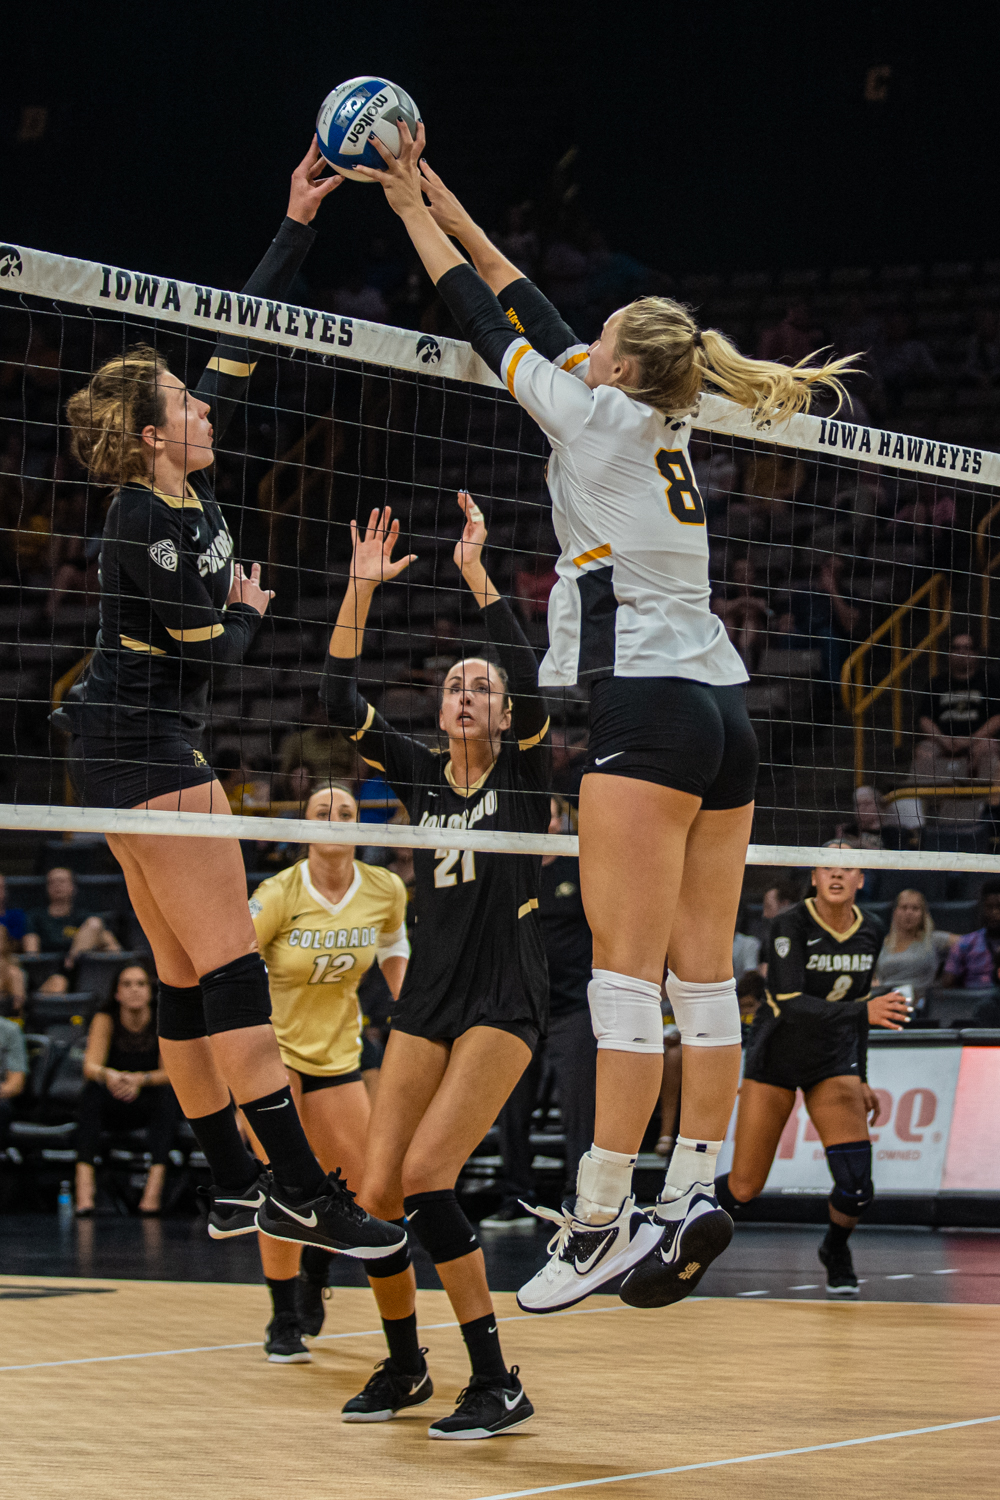 Iowa+outside+hitter+Kyndra+Hansen+%288%29+blocks+the+ball+during+a+volleyball+match+between+Iowa+and+Colorado+in+Carver-Hawkeye+Arena+on+Friday%2C+September+6%2C+2019.+The+Hawkeyes+dropped+their+season+opener+to+the+Buffaloes%2C+3-0.